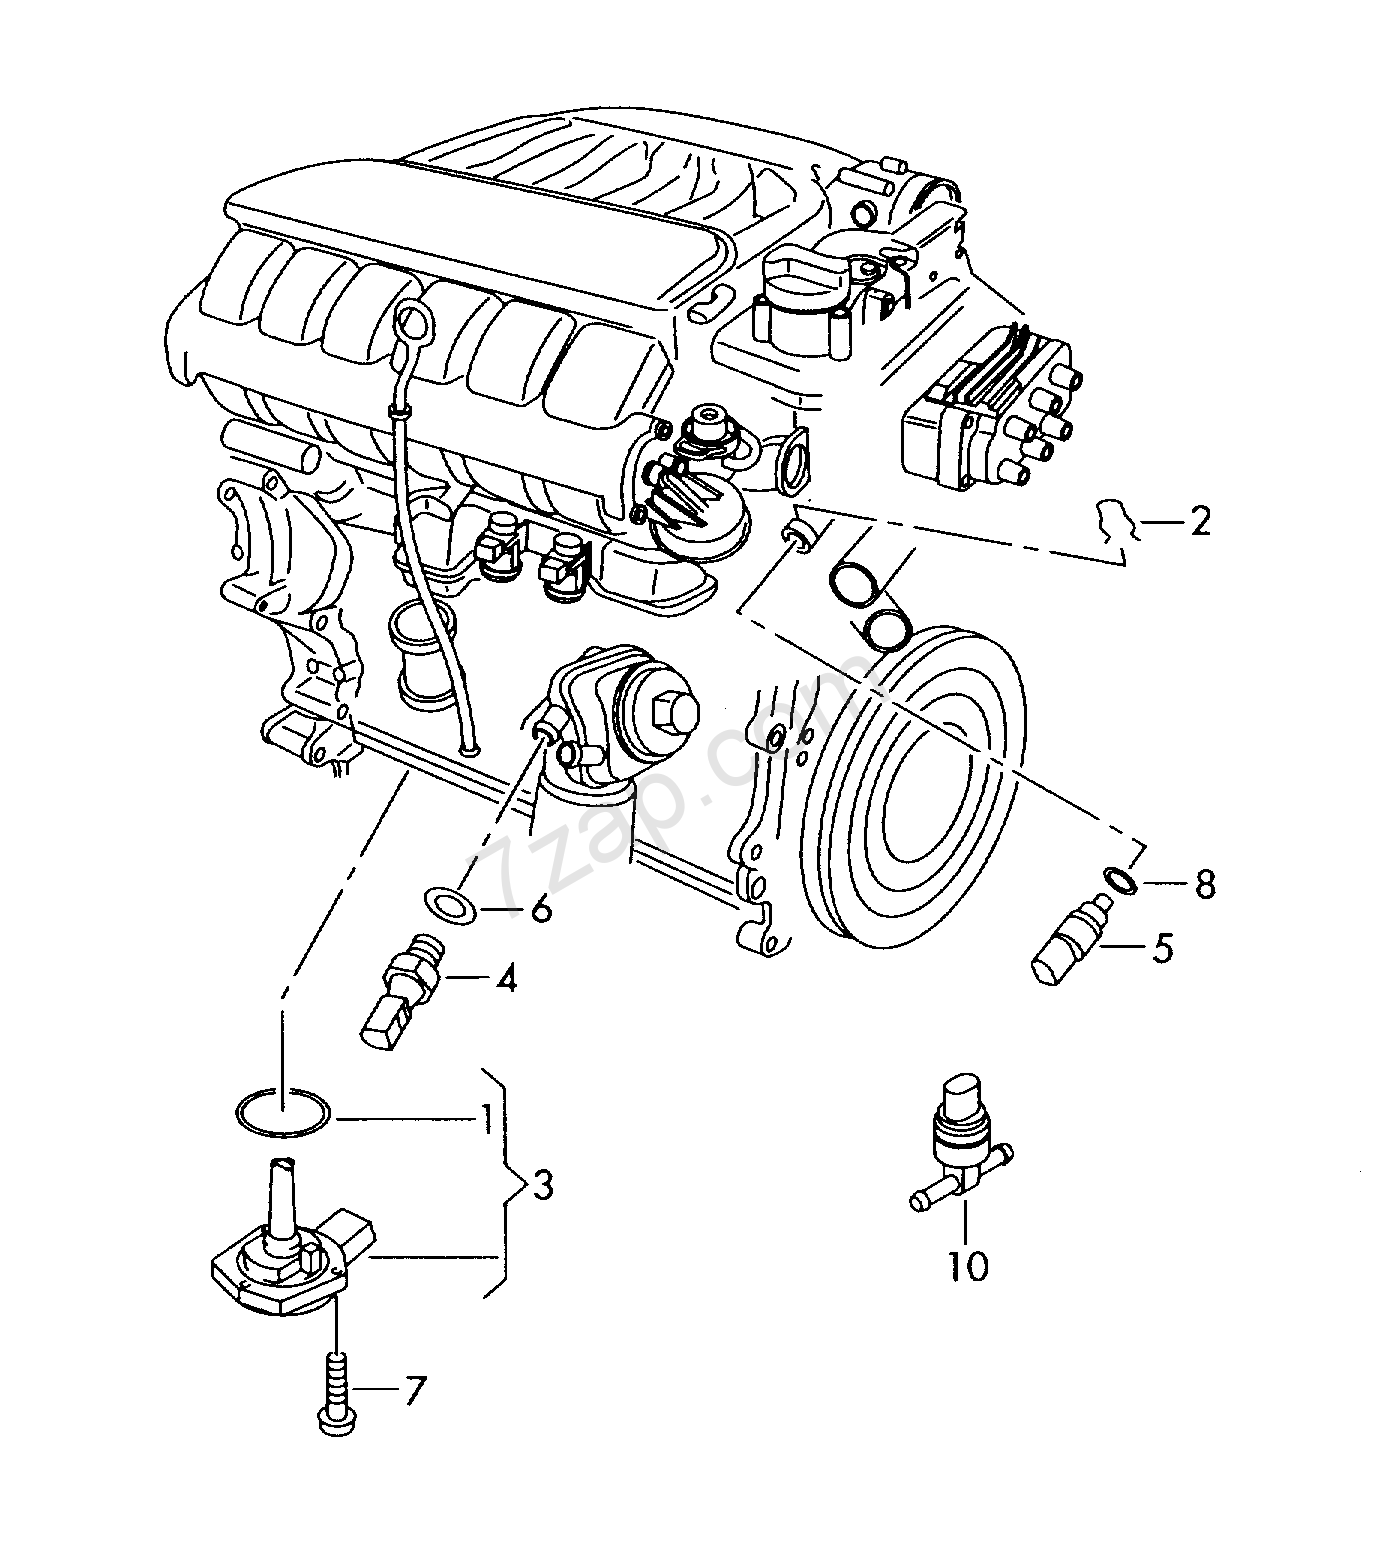 Switches And Senders On Engine Transporter Tr Year